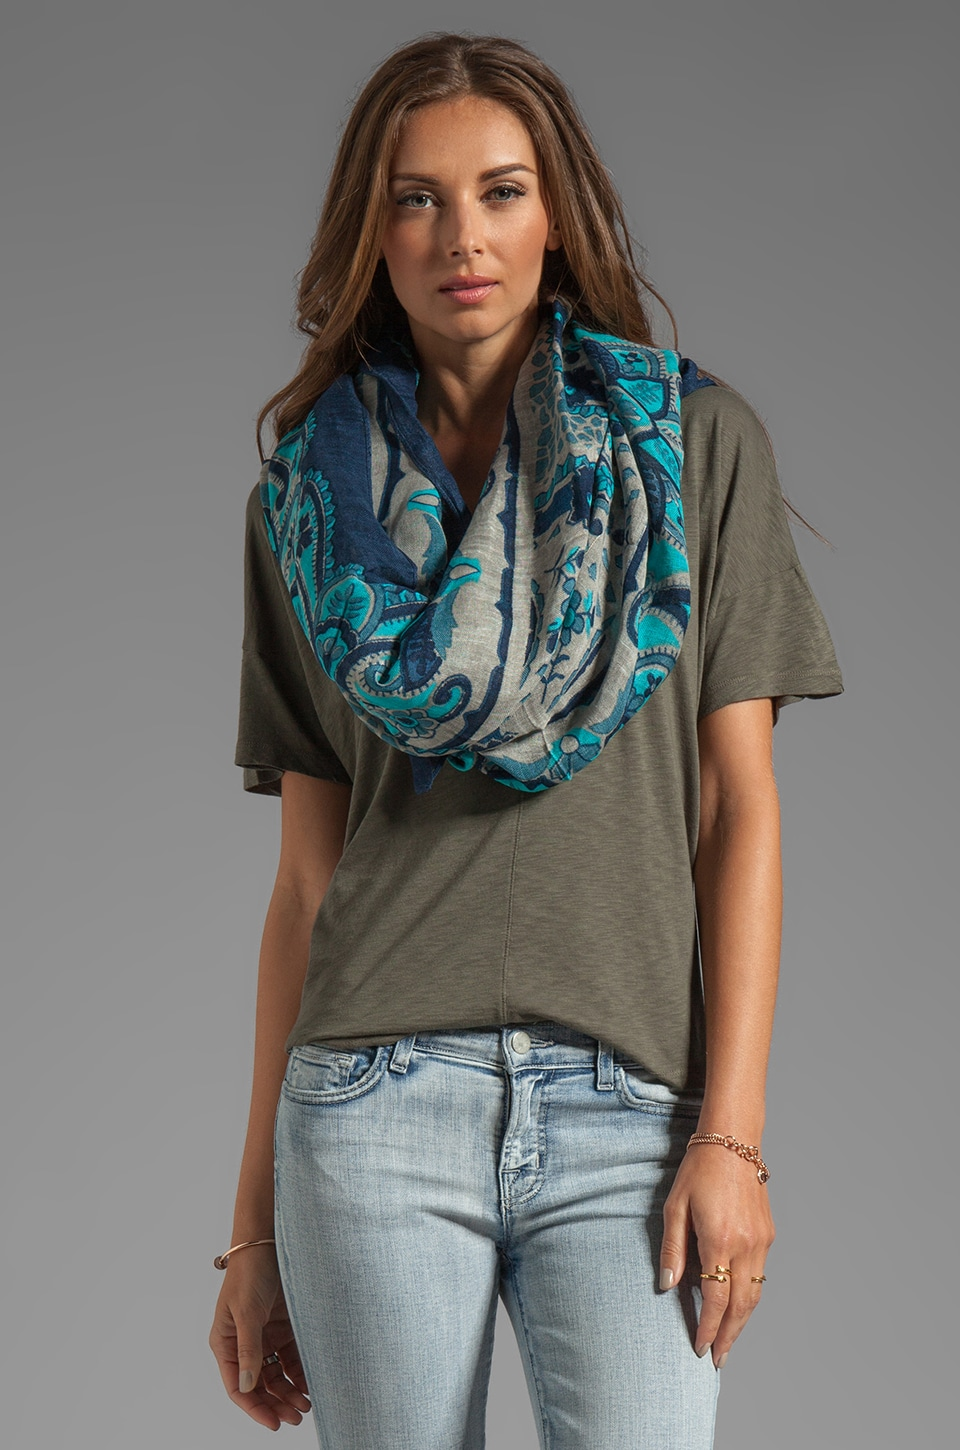 Theodora & Callum Lugano Tie All Scarf in Blue Multi